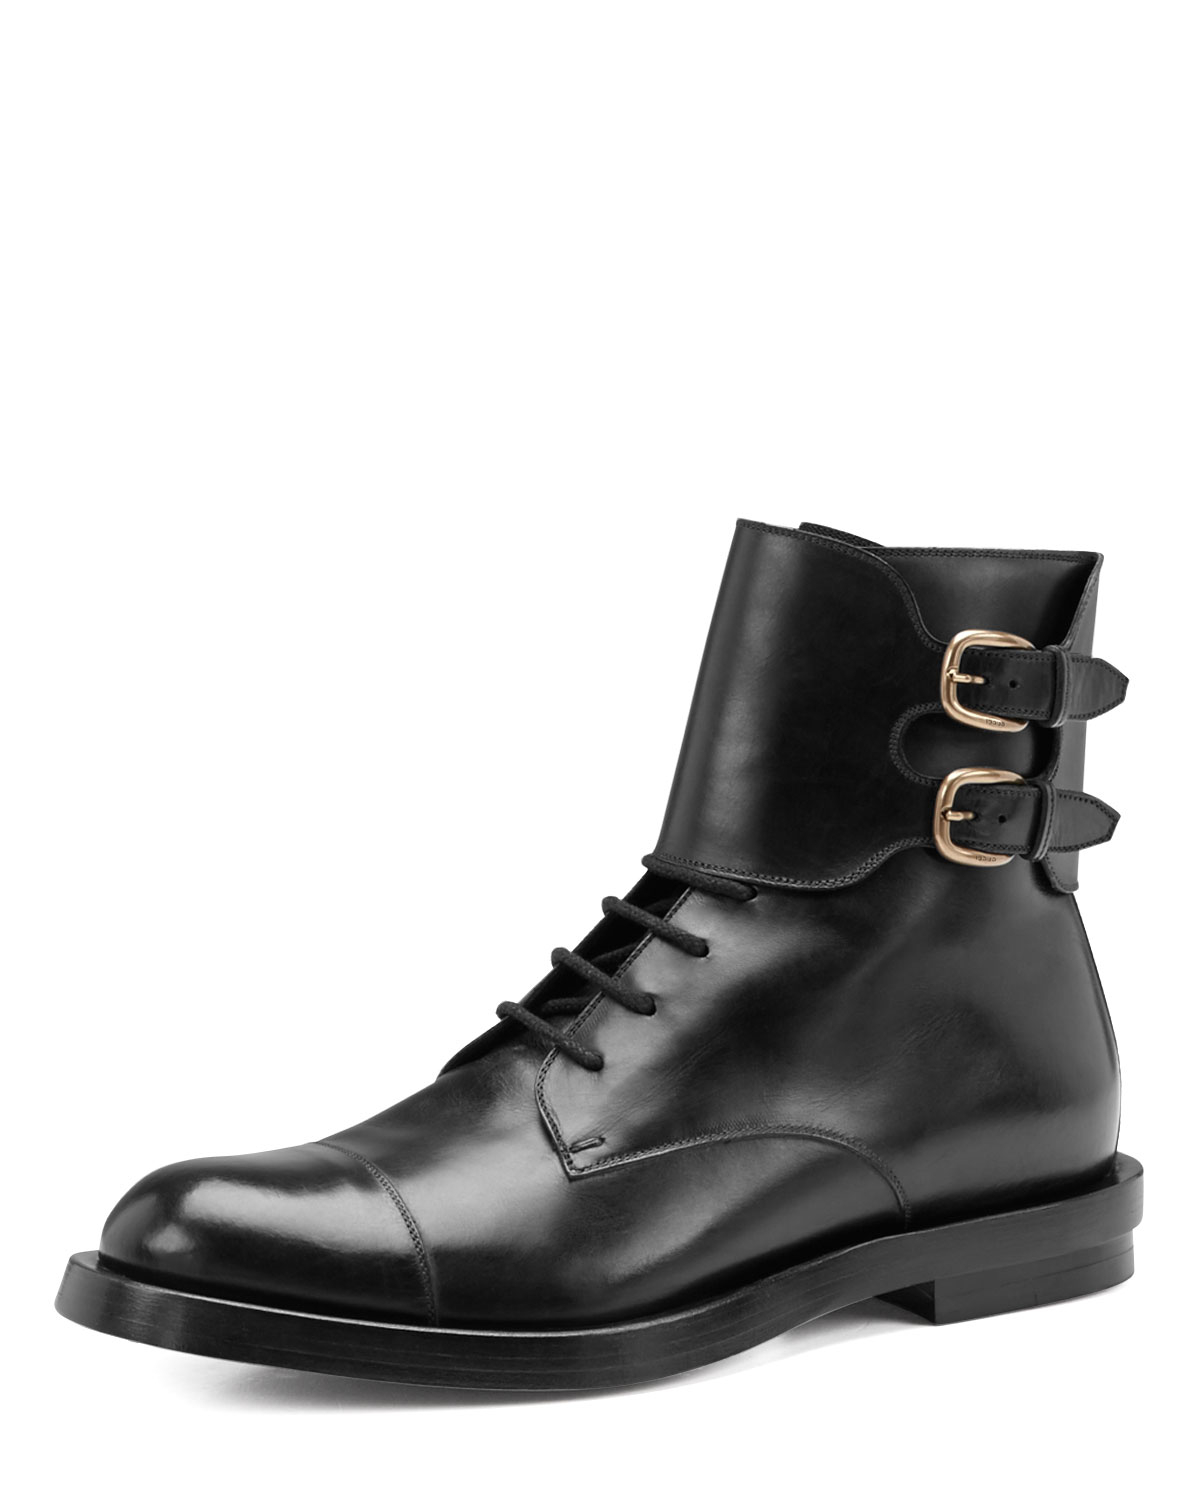 Gucci Leather Doublebuckle Military Boot In Black For Men